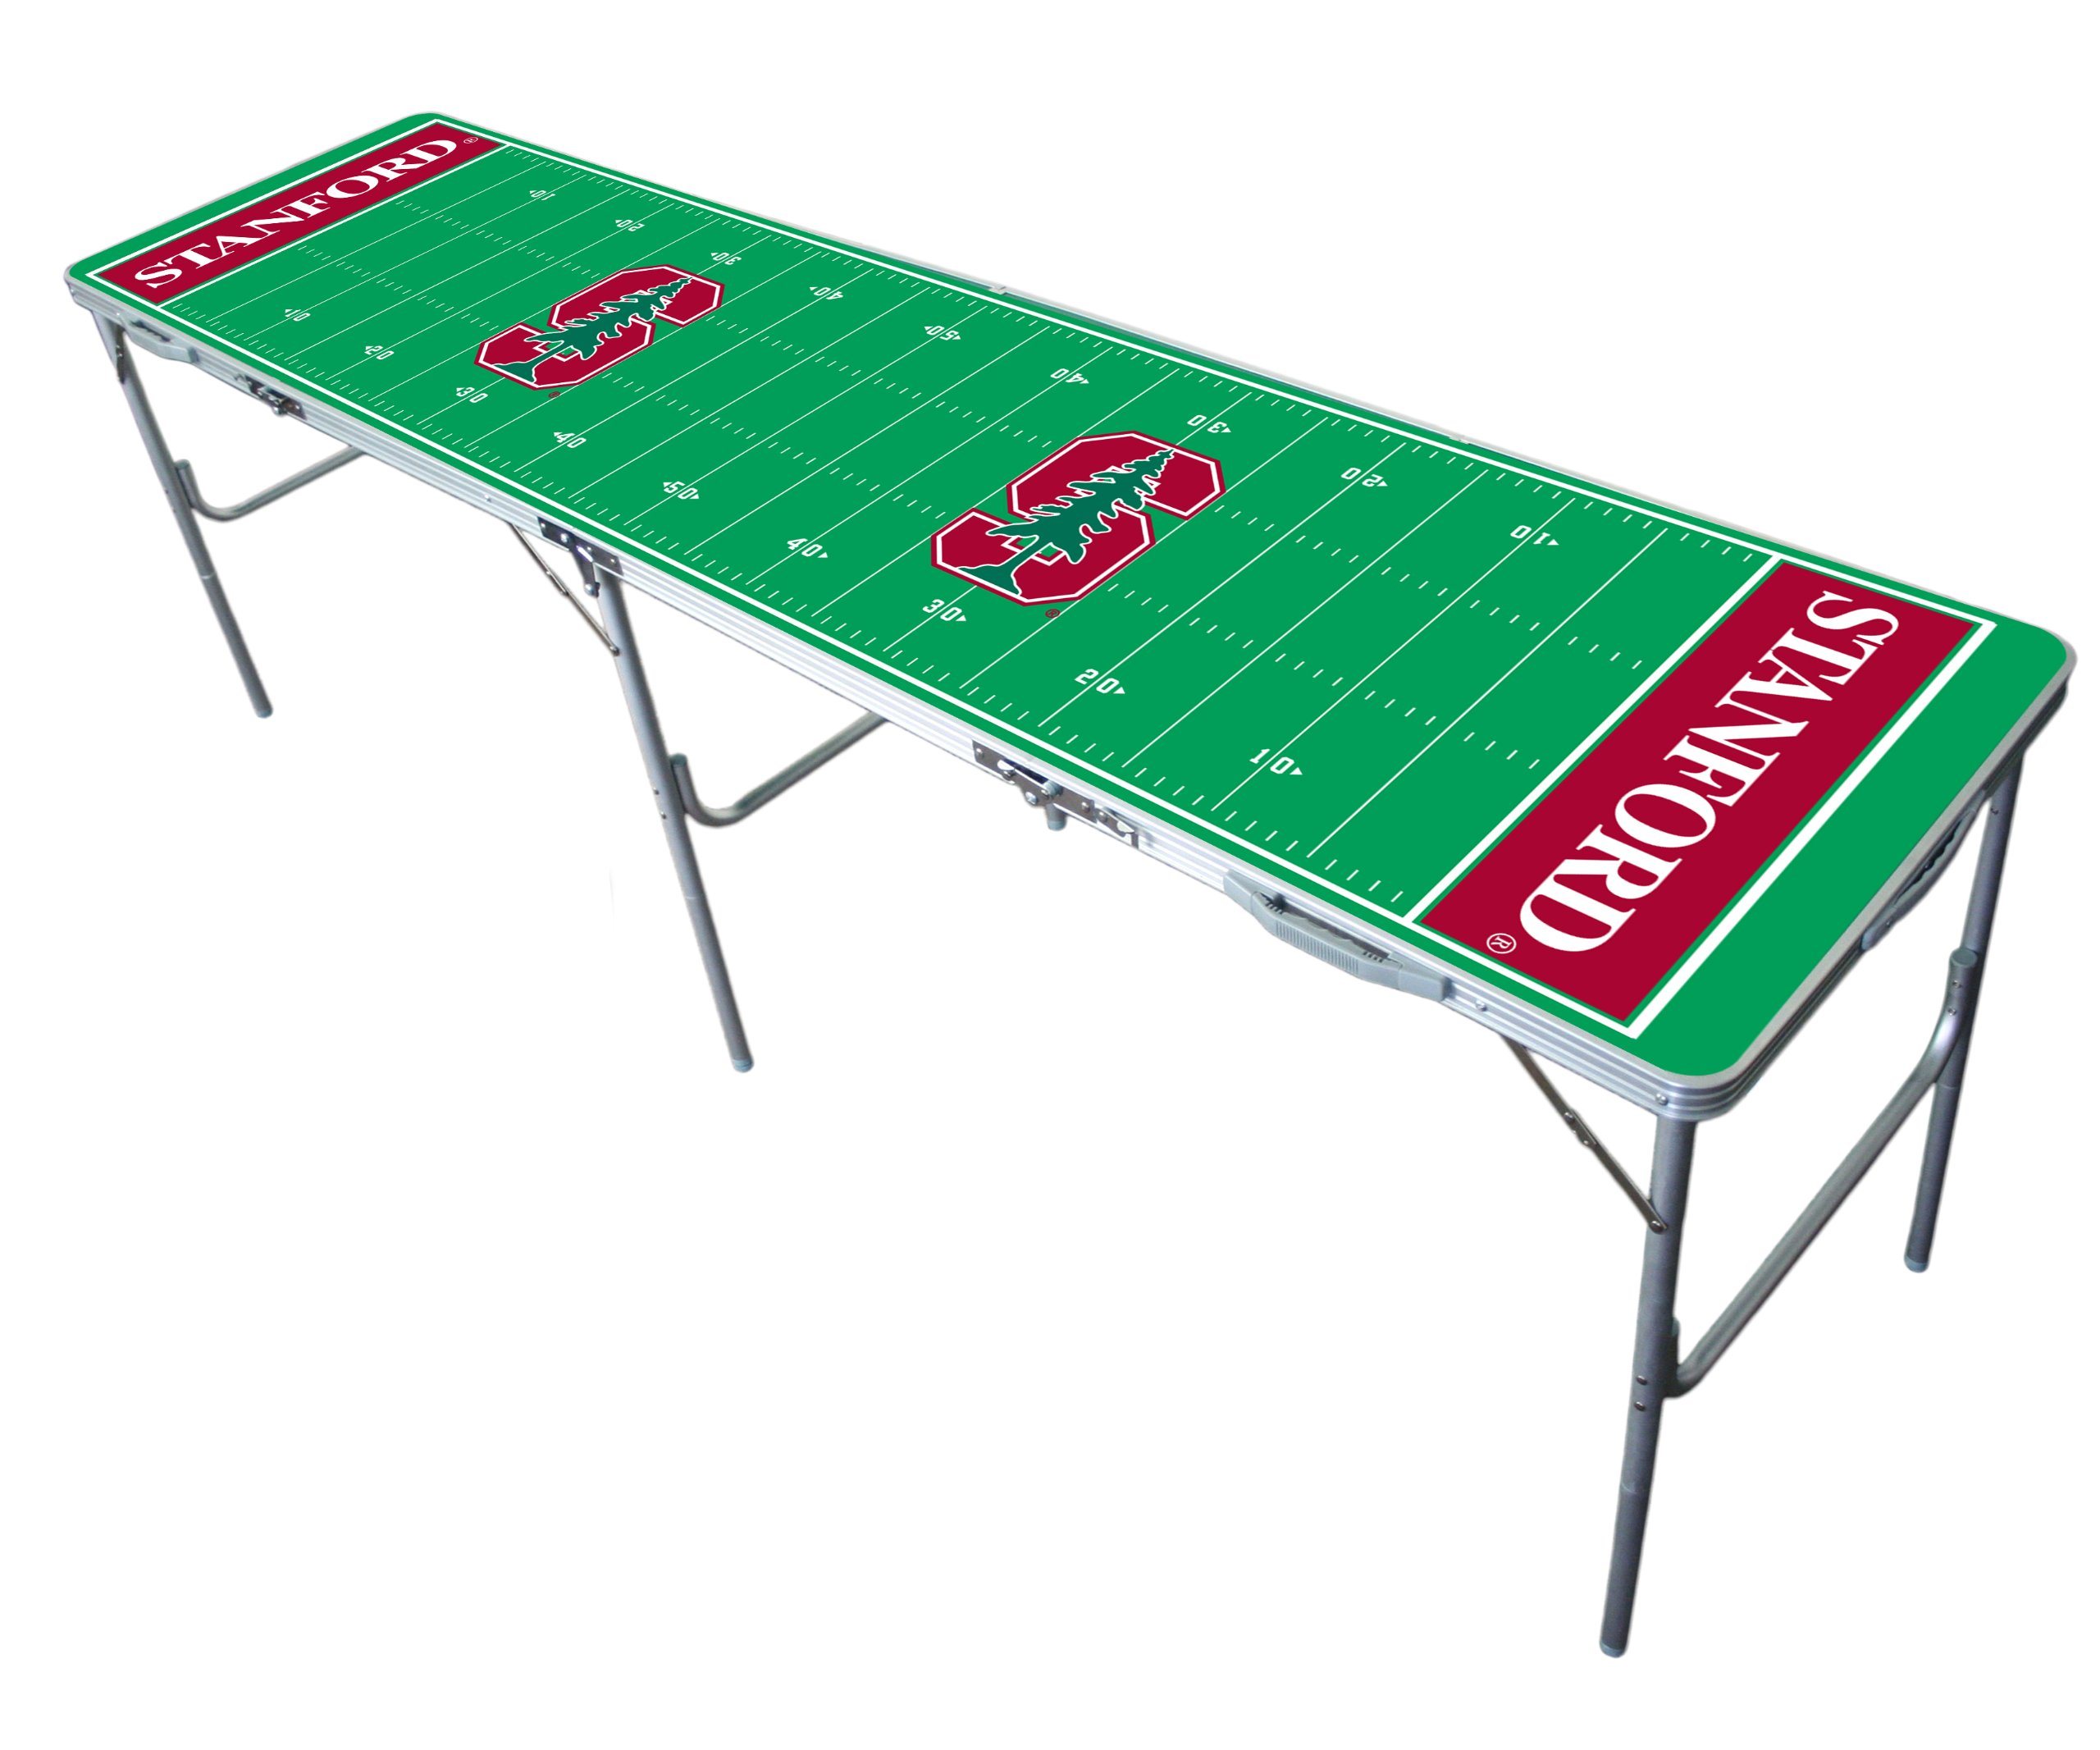 Stanford Cardinal 2x8 Tailgate Table by Wild Sports by Wild Sports